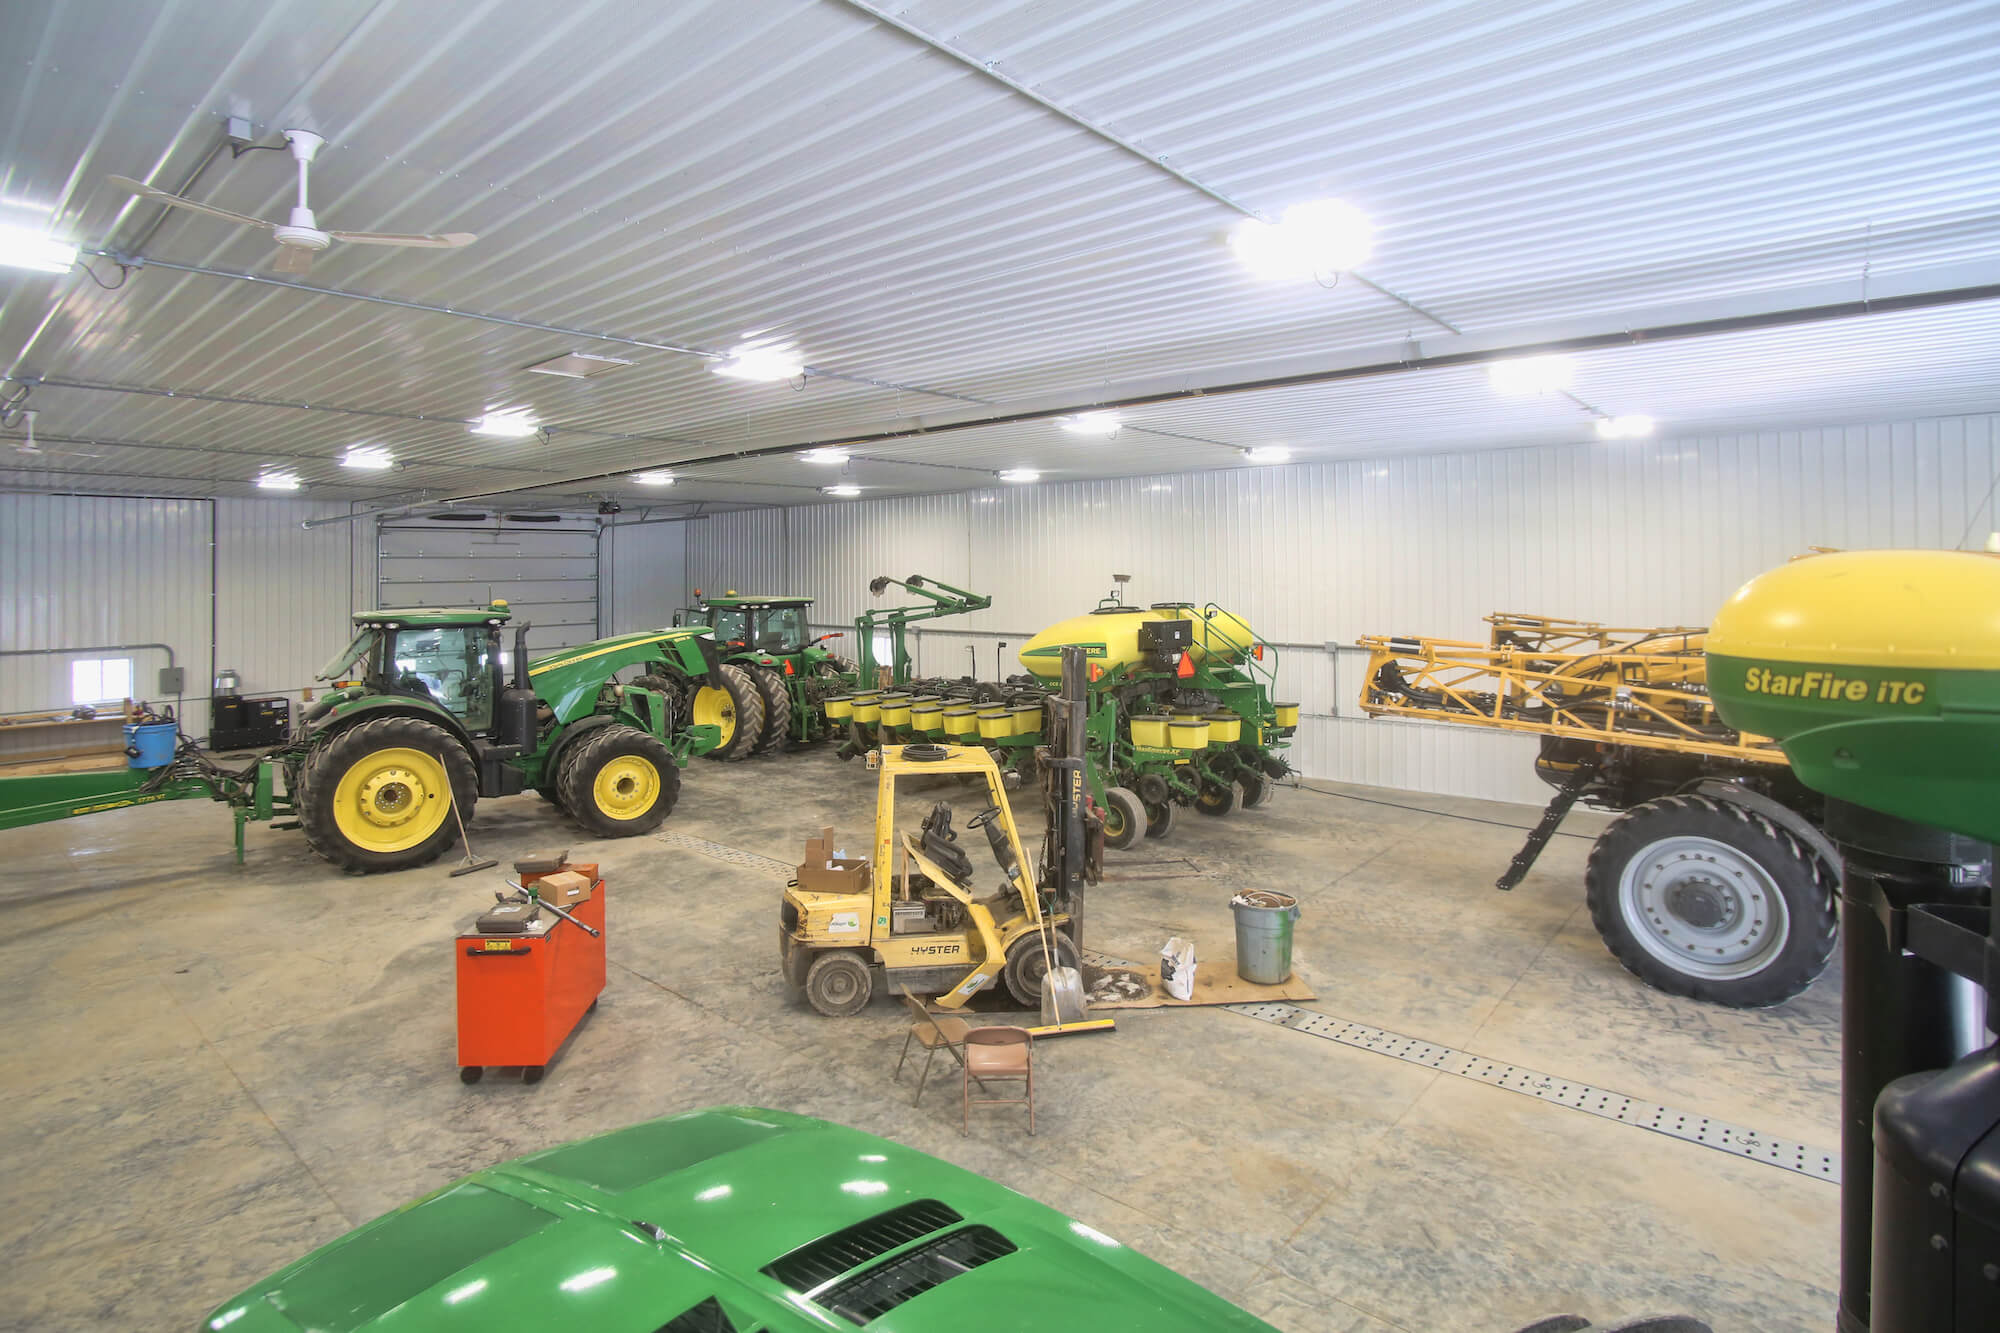 inside a greiner lined shop with farm equipment